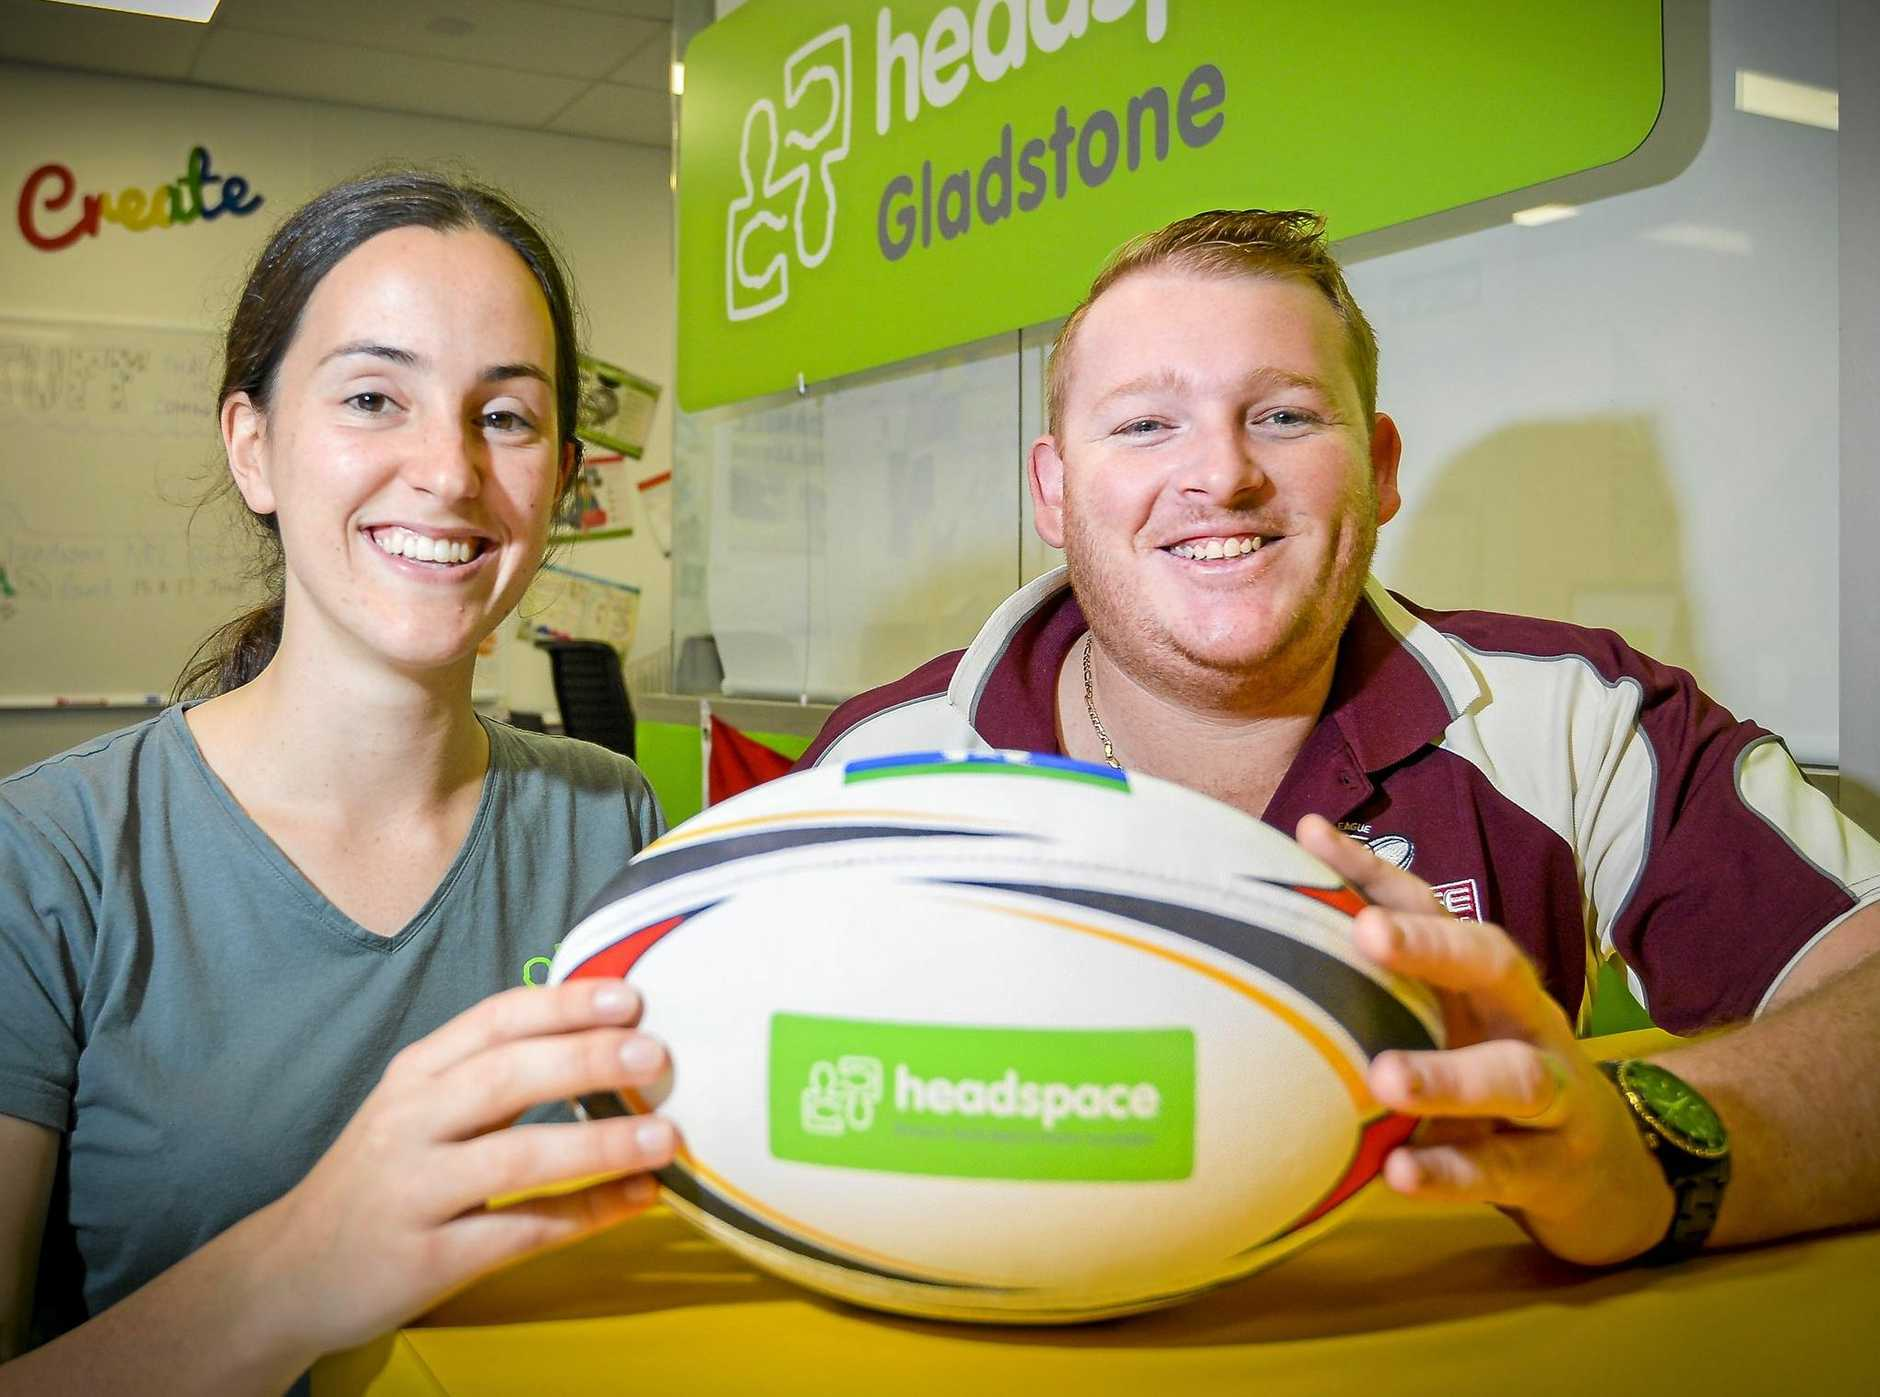 Headspace Gladstone youth and commuity engagement leader, Rachel Donovan and Gladstone Rugby League Referees Association president Cameron Shearer ahead of the 2018 annual charity round in Gladstone.